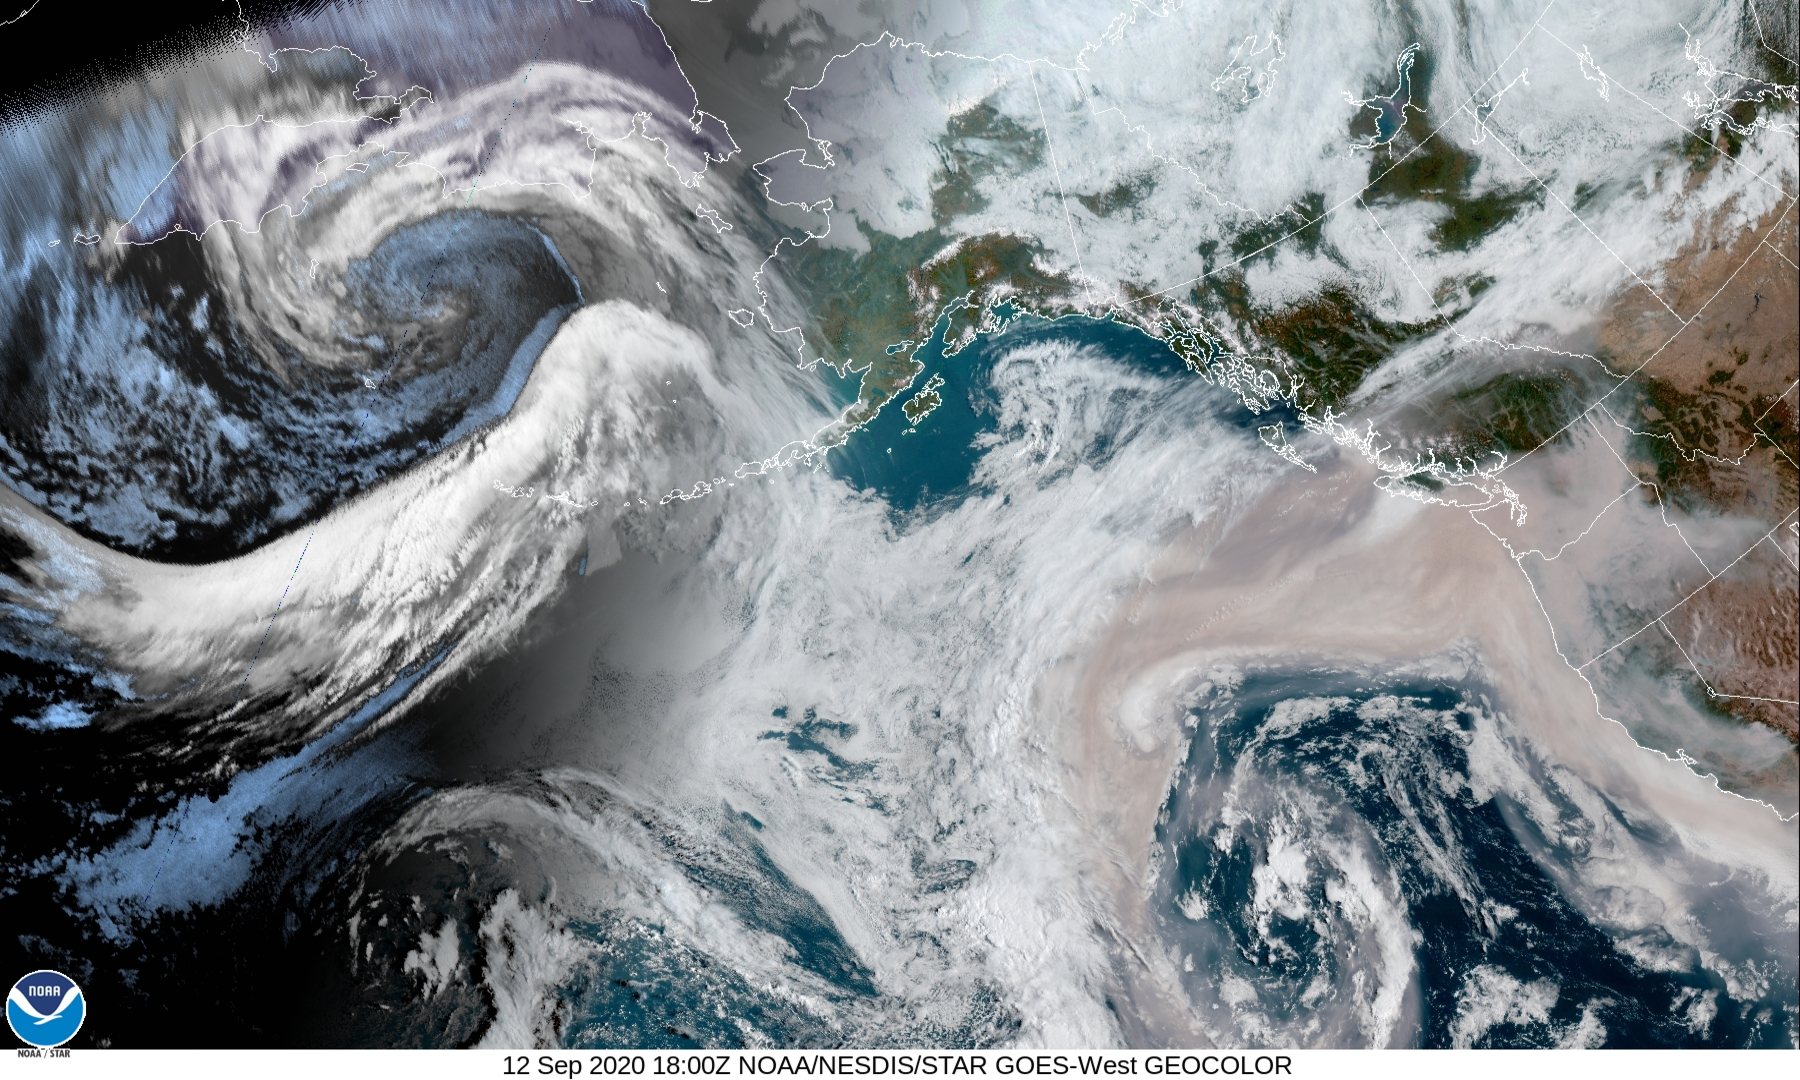 A satellite image of the Northeast Pacific taken by the U.S. National Oceanic and Atmospheric Administration (NOAA) on Sept. 12.